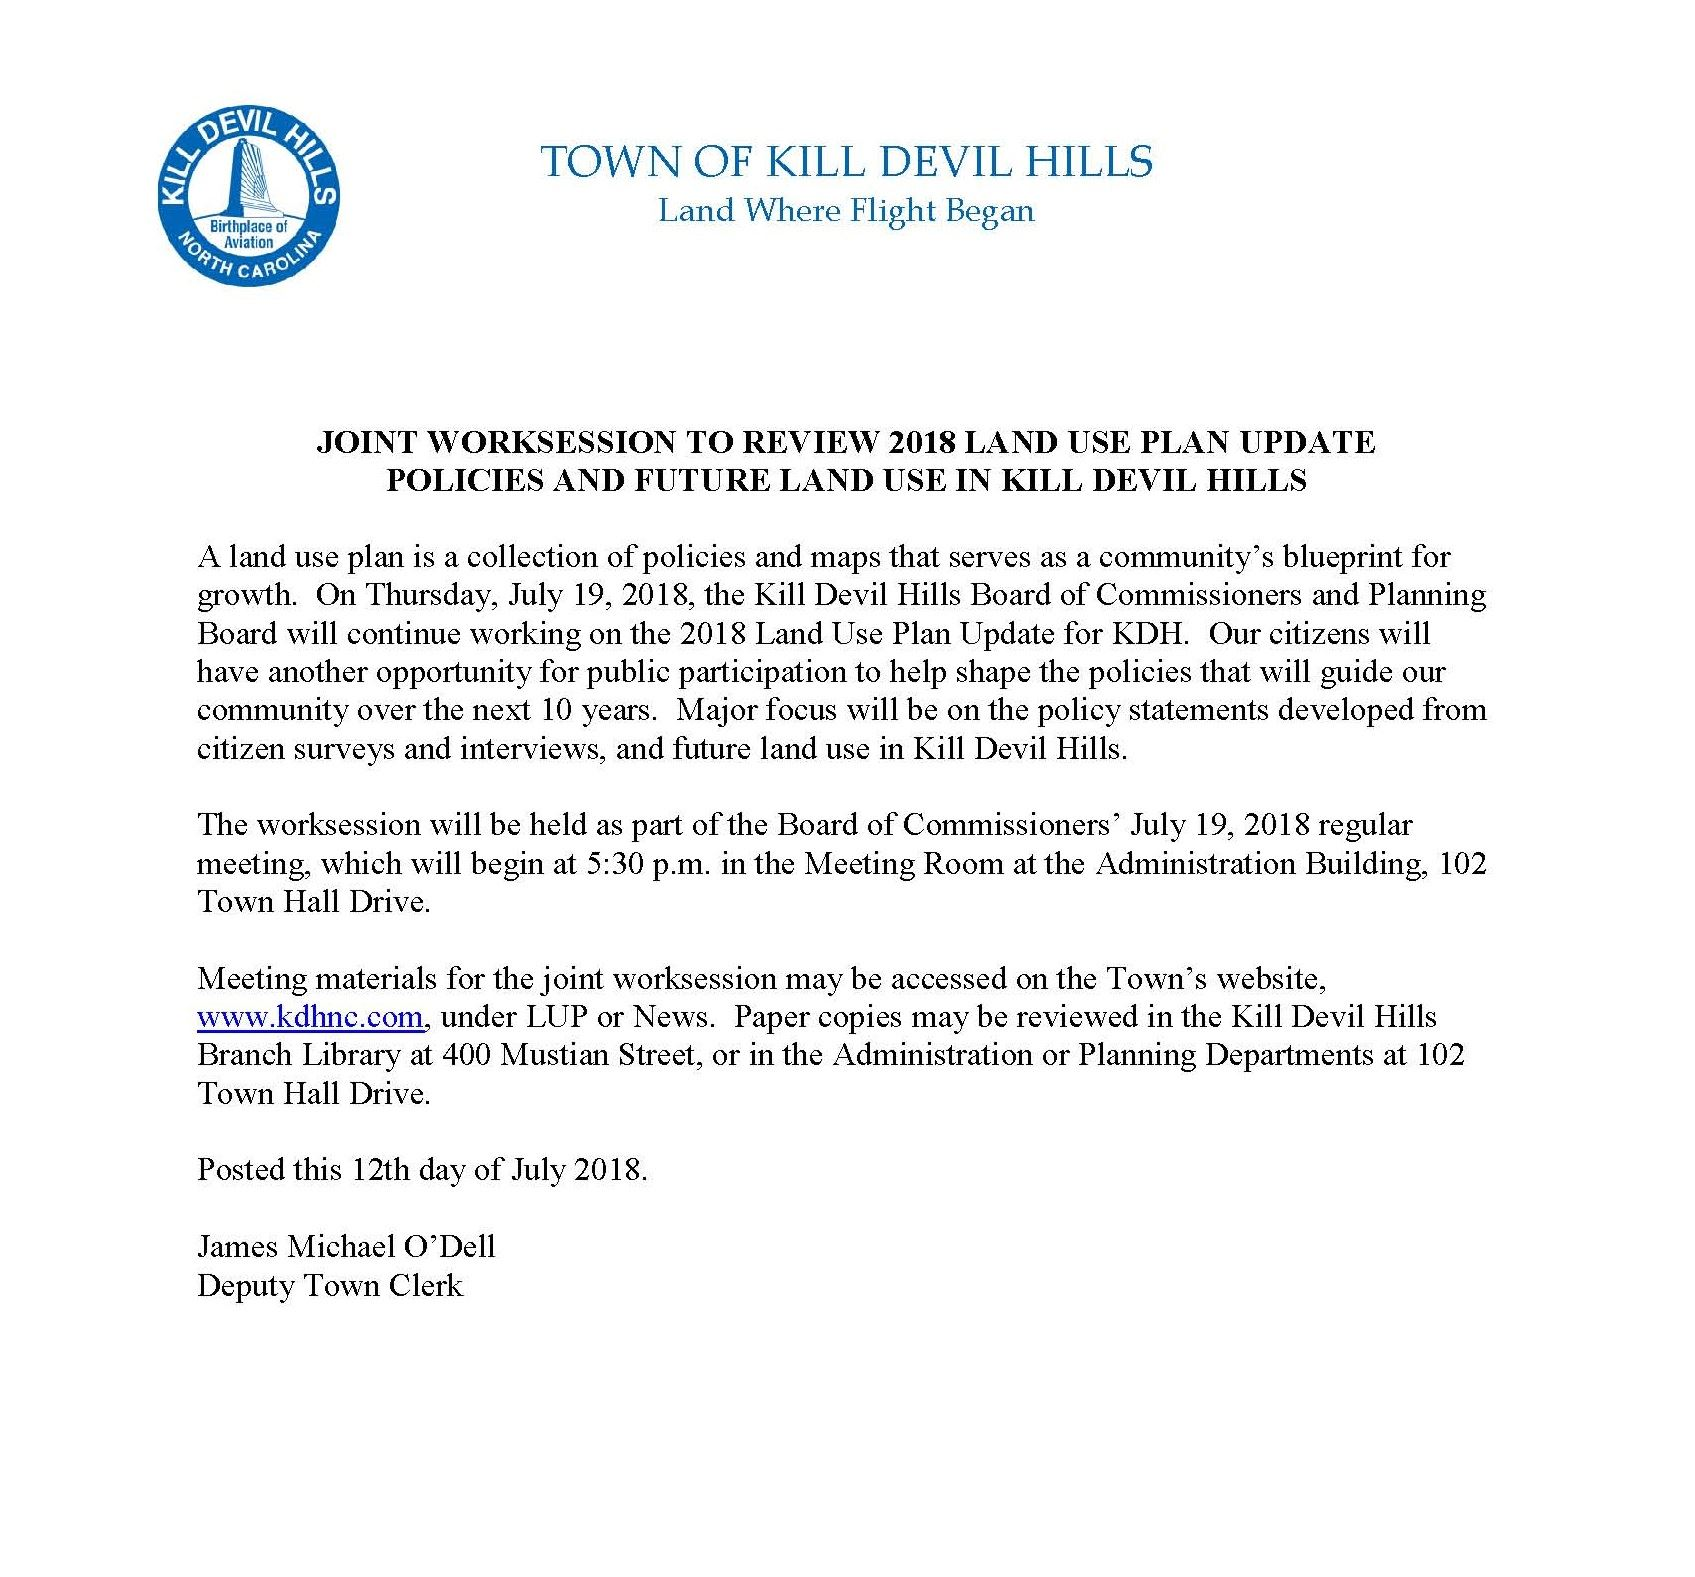 7.19.2018 Kill Devil Hills Board of Commissioners Joint Worksession Notice